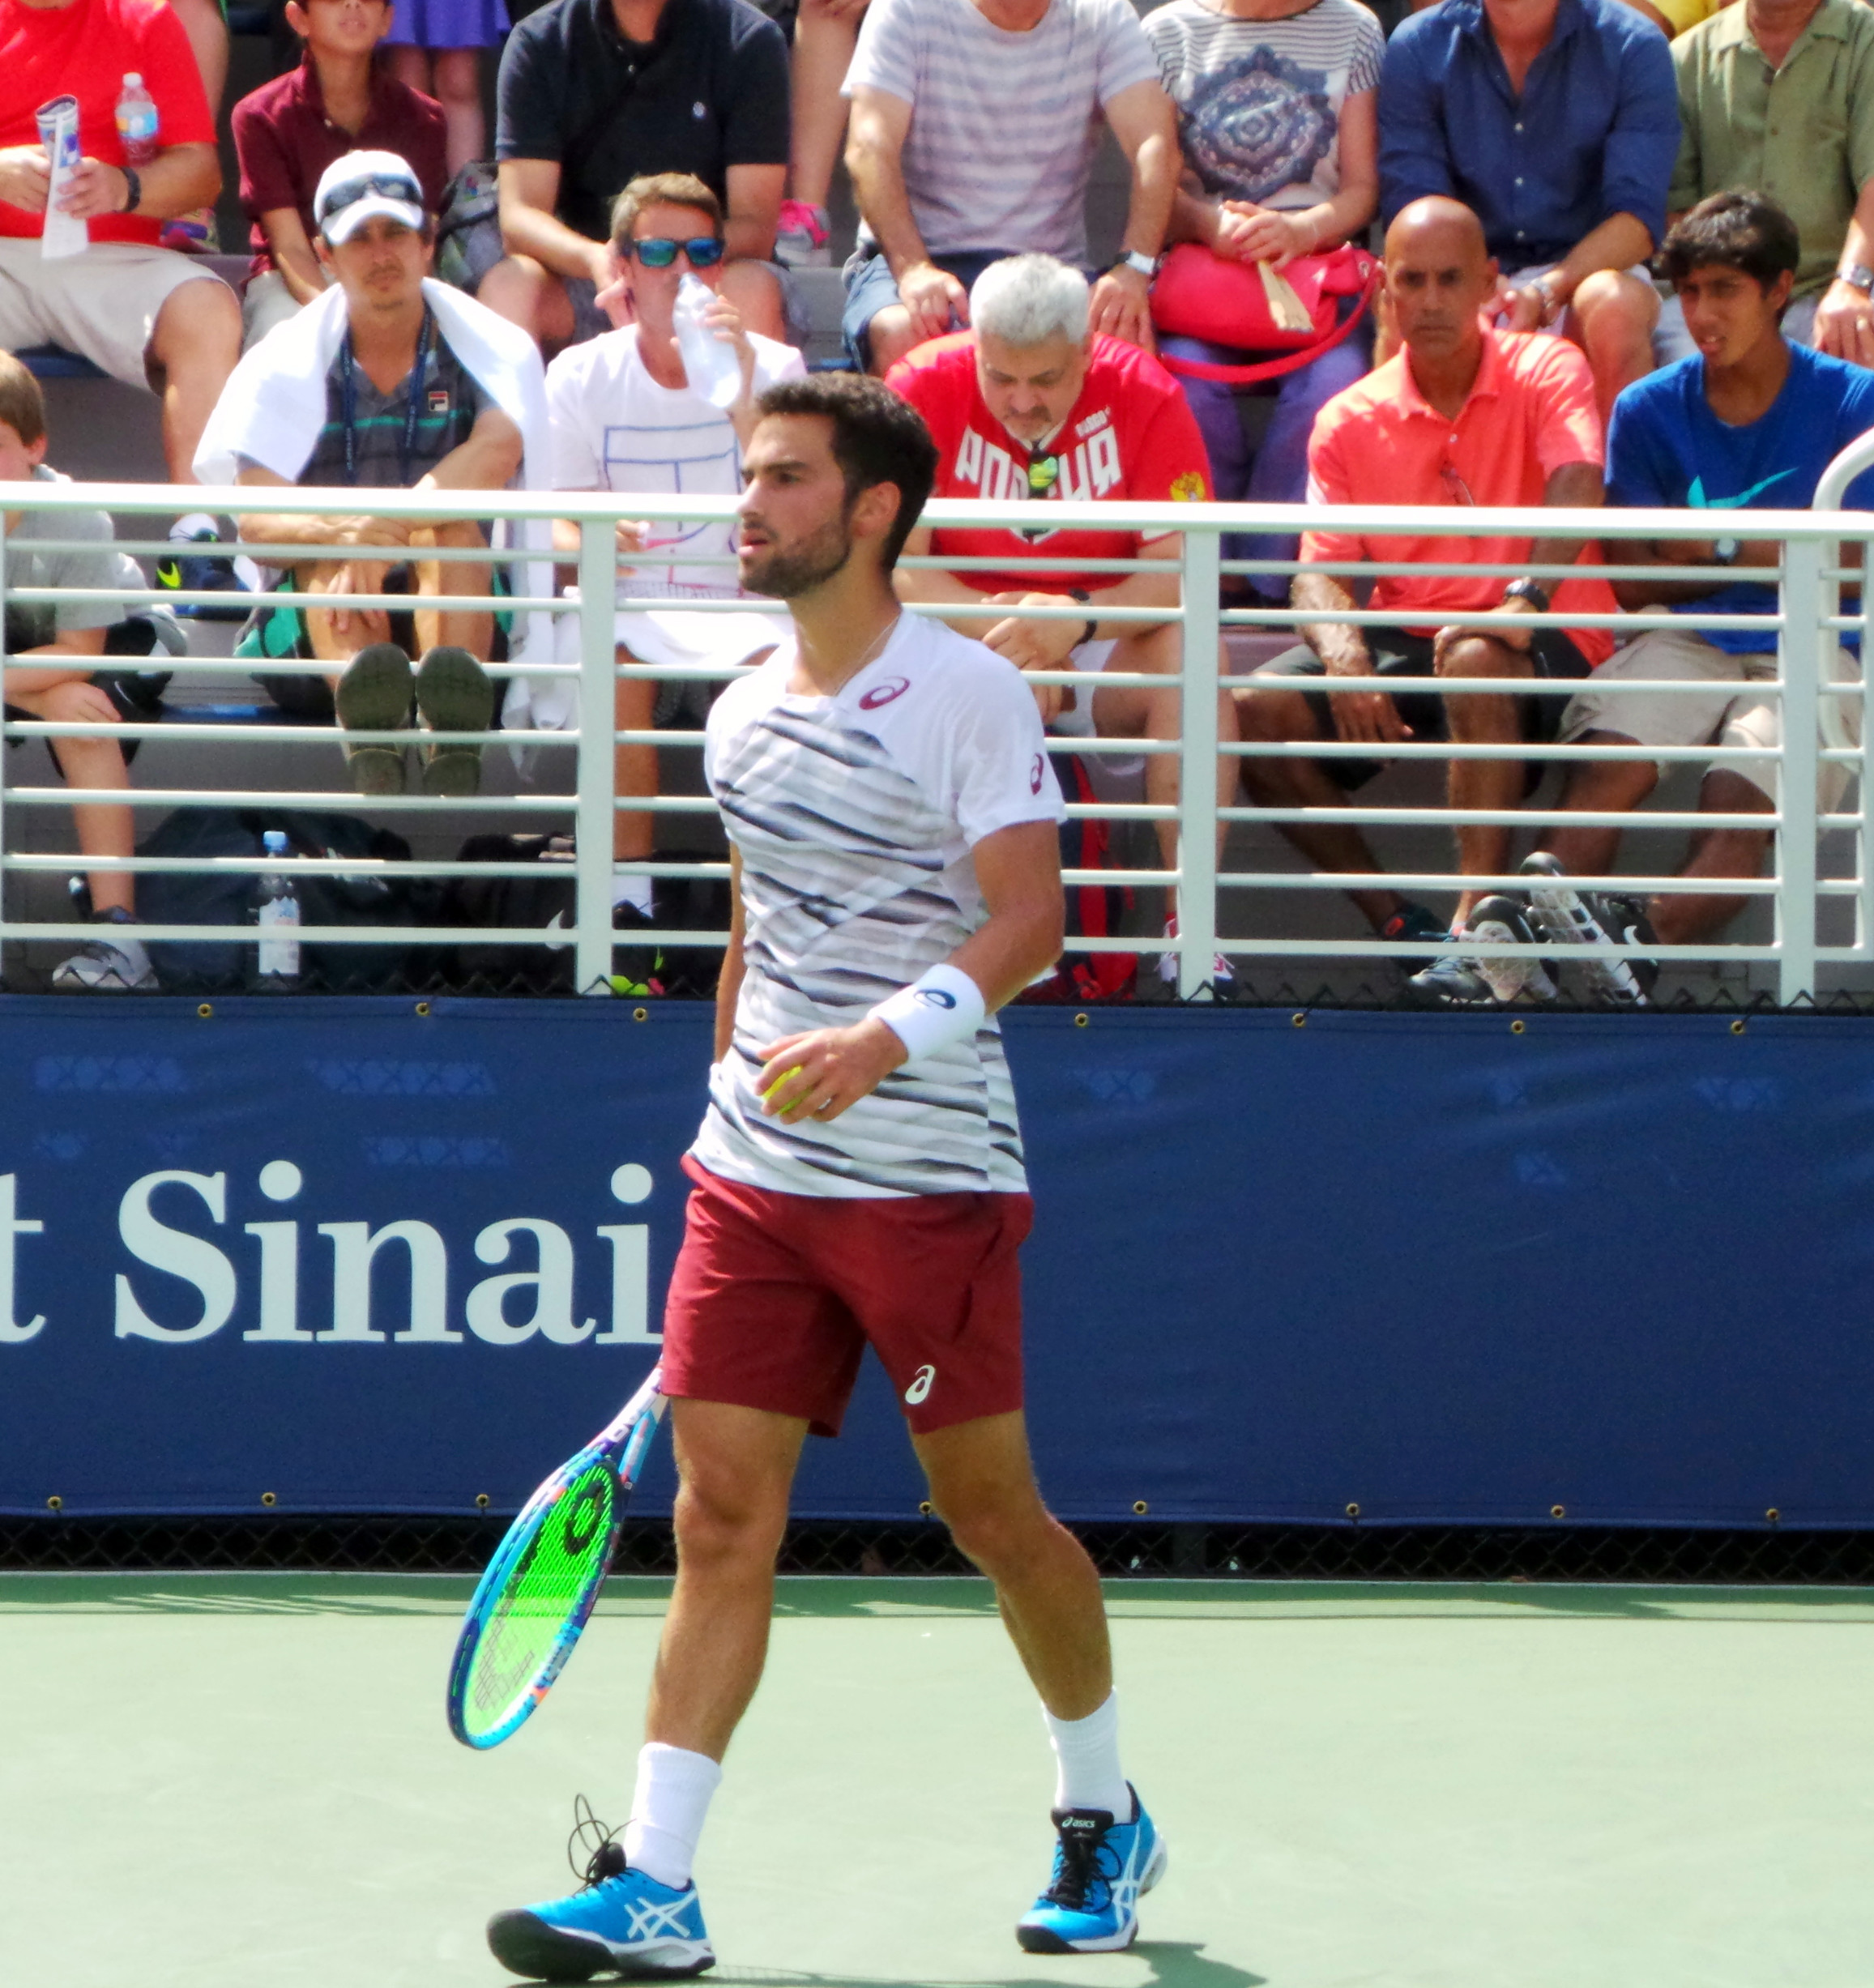 Noah Rubin during the Qualifying Tournaments at the U.S. Open in 2016.